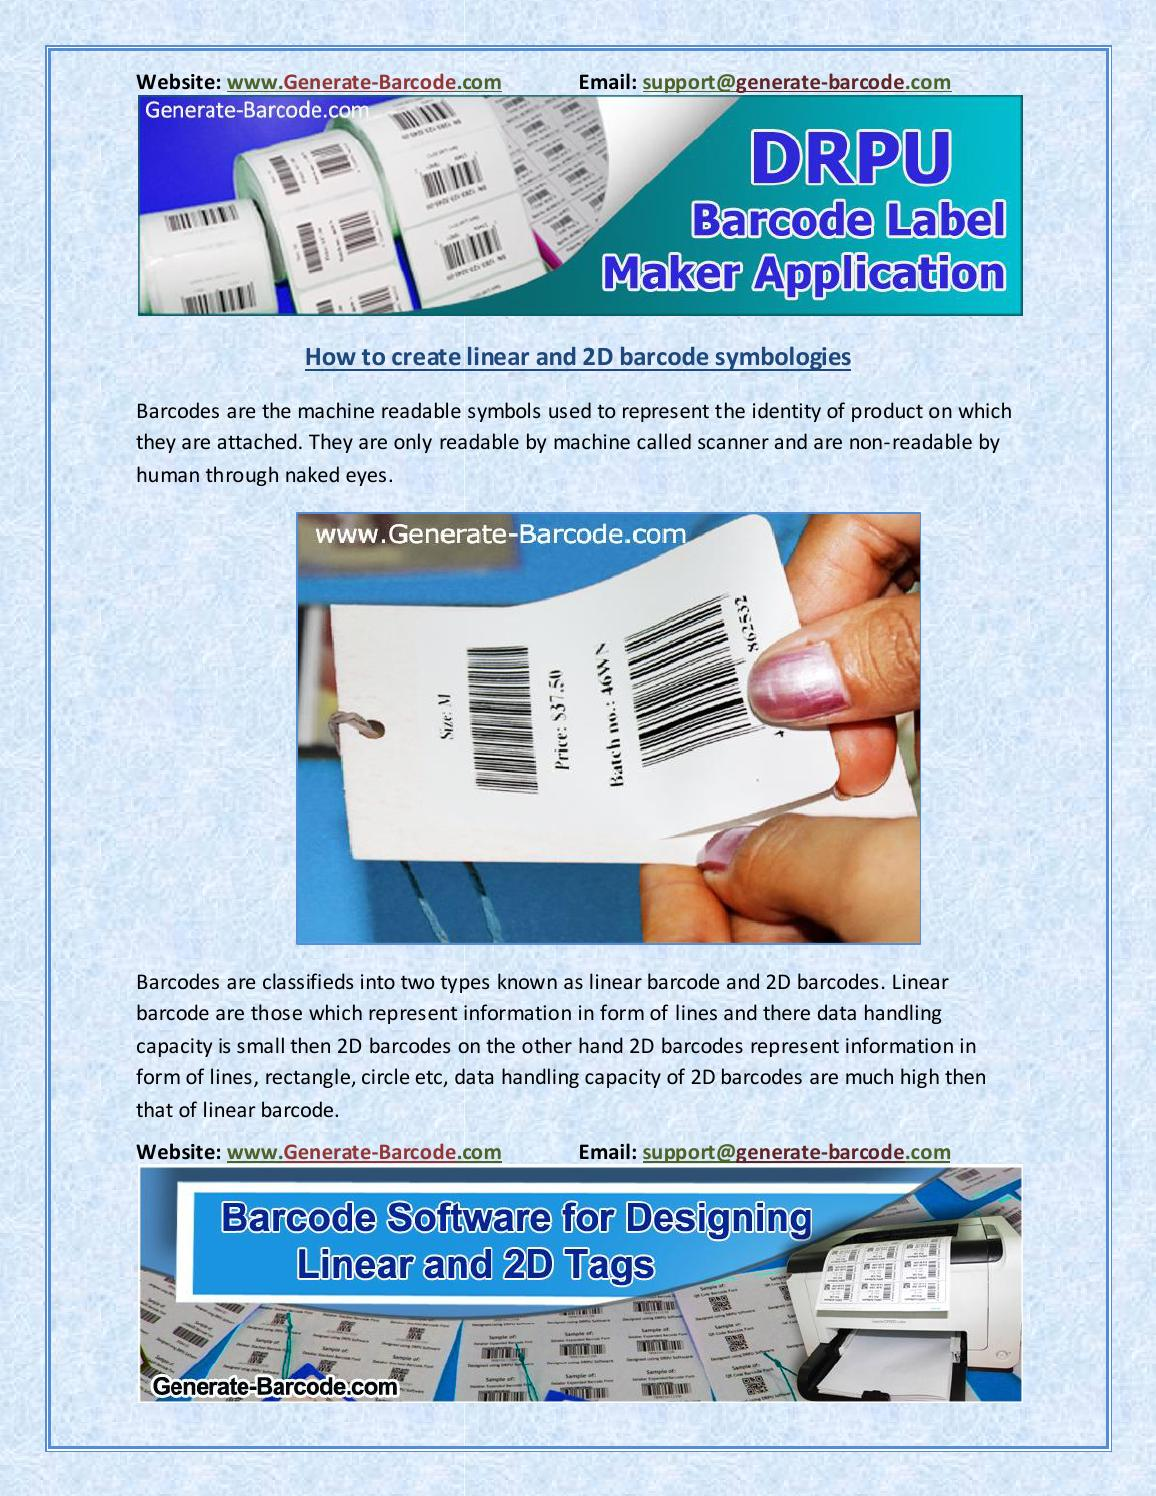 How to create linear and 2d barcode symbologies by Tarun